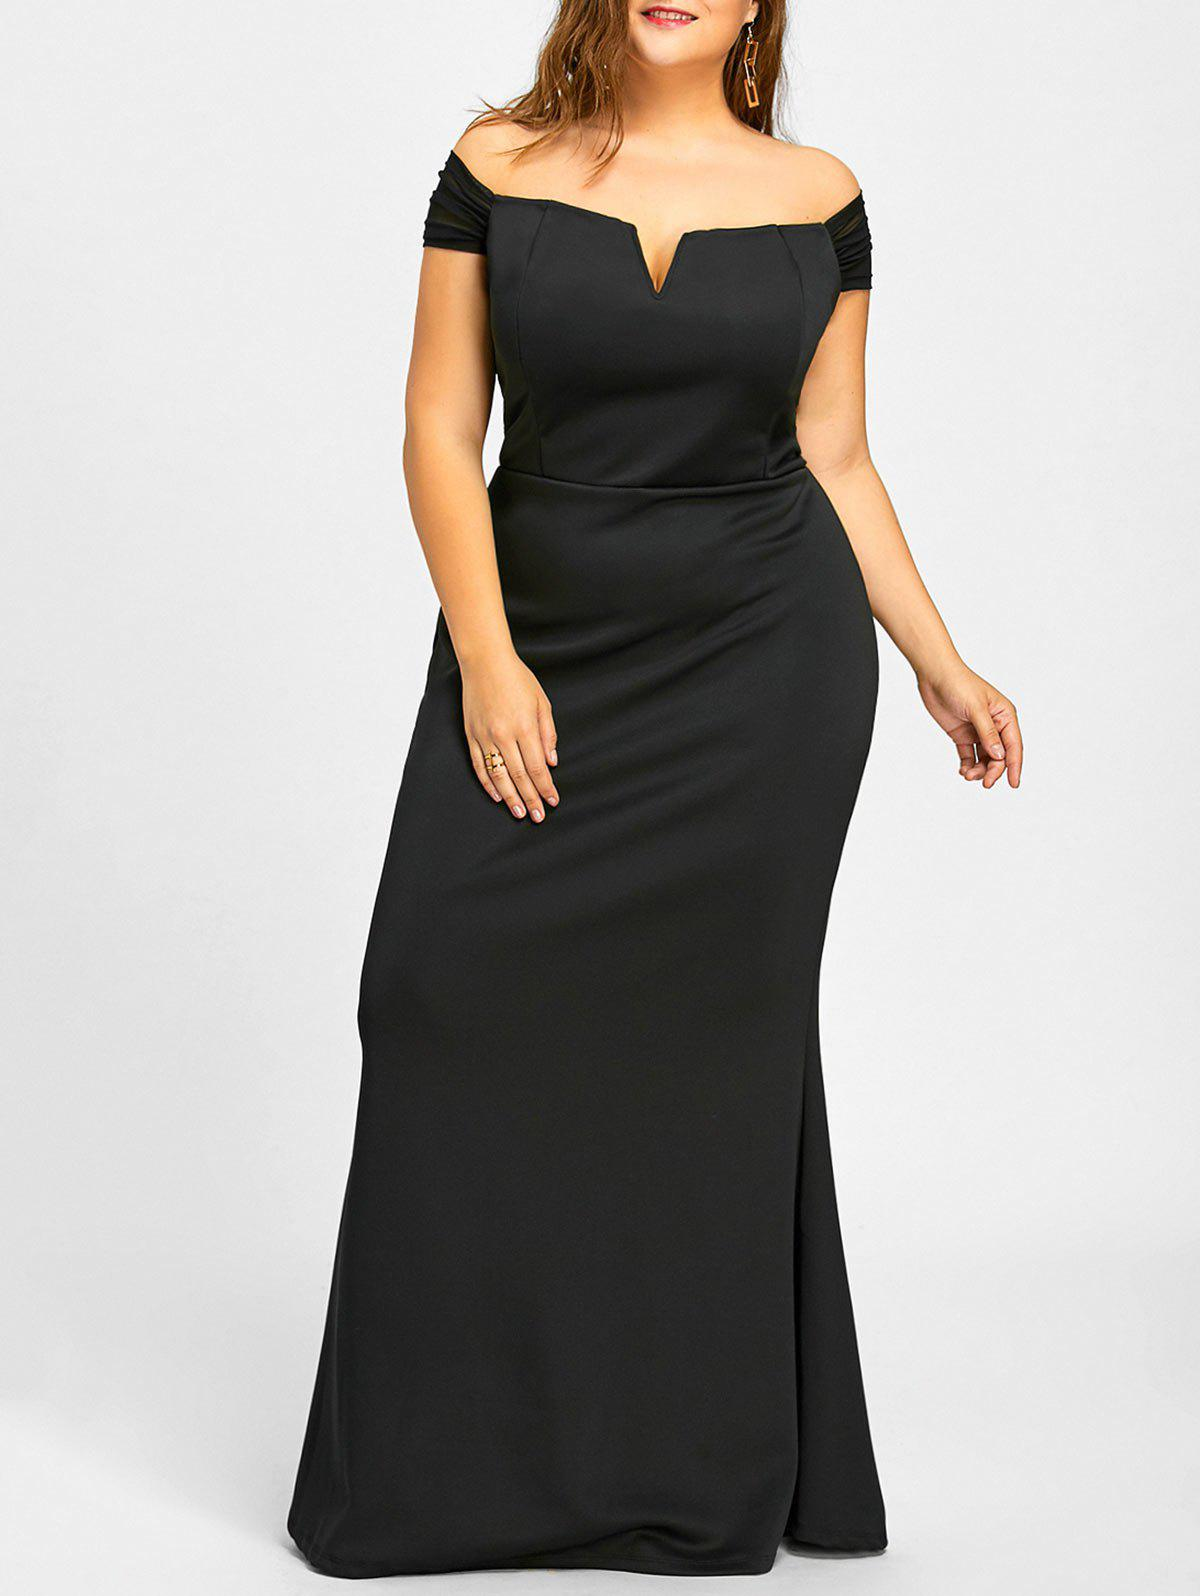 Plus Size Mermaid Off The Shoulder Formal DressWOMEN<br><br>Size: 2XL; Color: BLACK; Style: Casual; Material: Cotton,Polyester; Silhouette: Trumpet/Mermaid; Dresses Length: Floor-Length; Neckline: Off The Shoulder; Sleeve Length: Short Sleeves; Pattern Type: Solid; With Belt: No; Season: Fall,Spring,Summer,Winter; Weight: 0.7950kg; Package Contents: 1 x Dress;